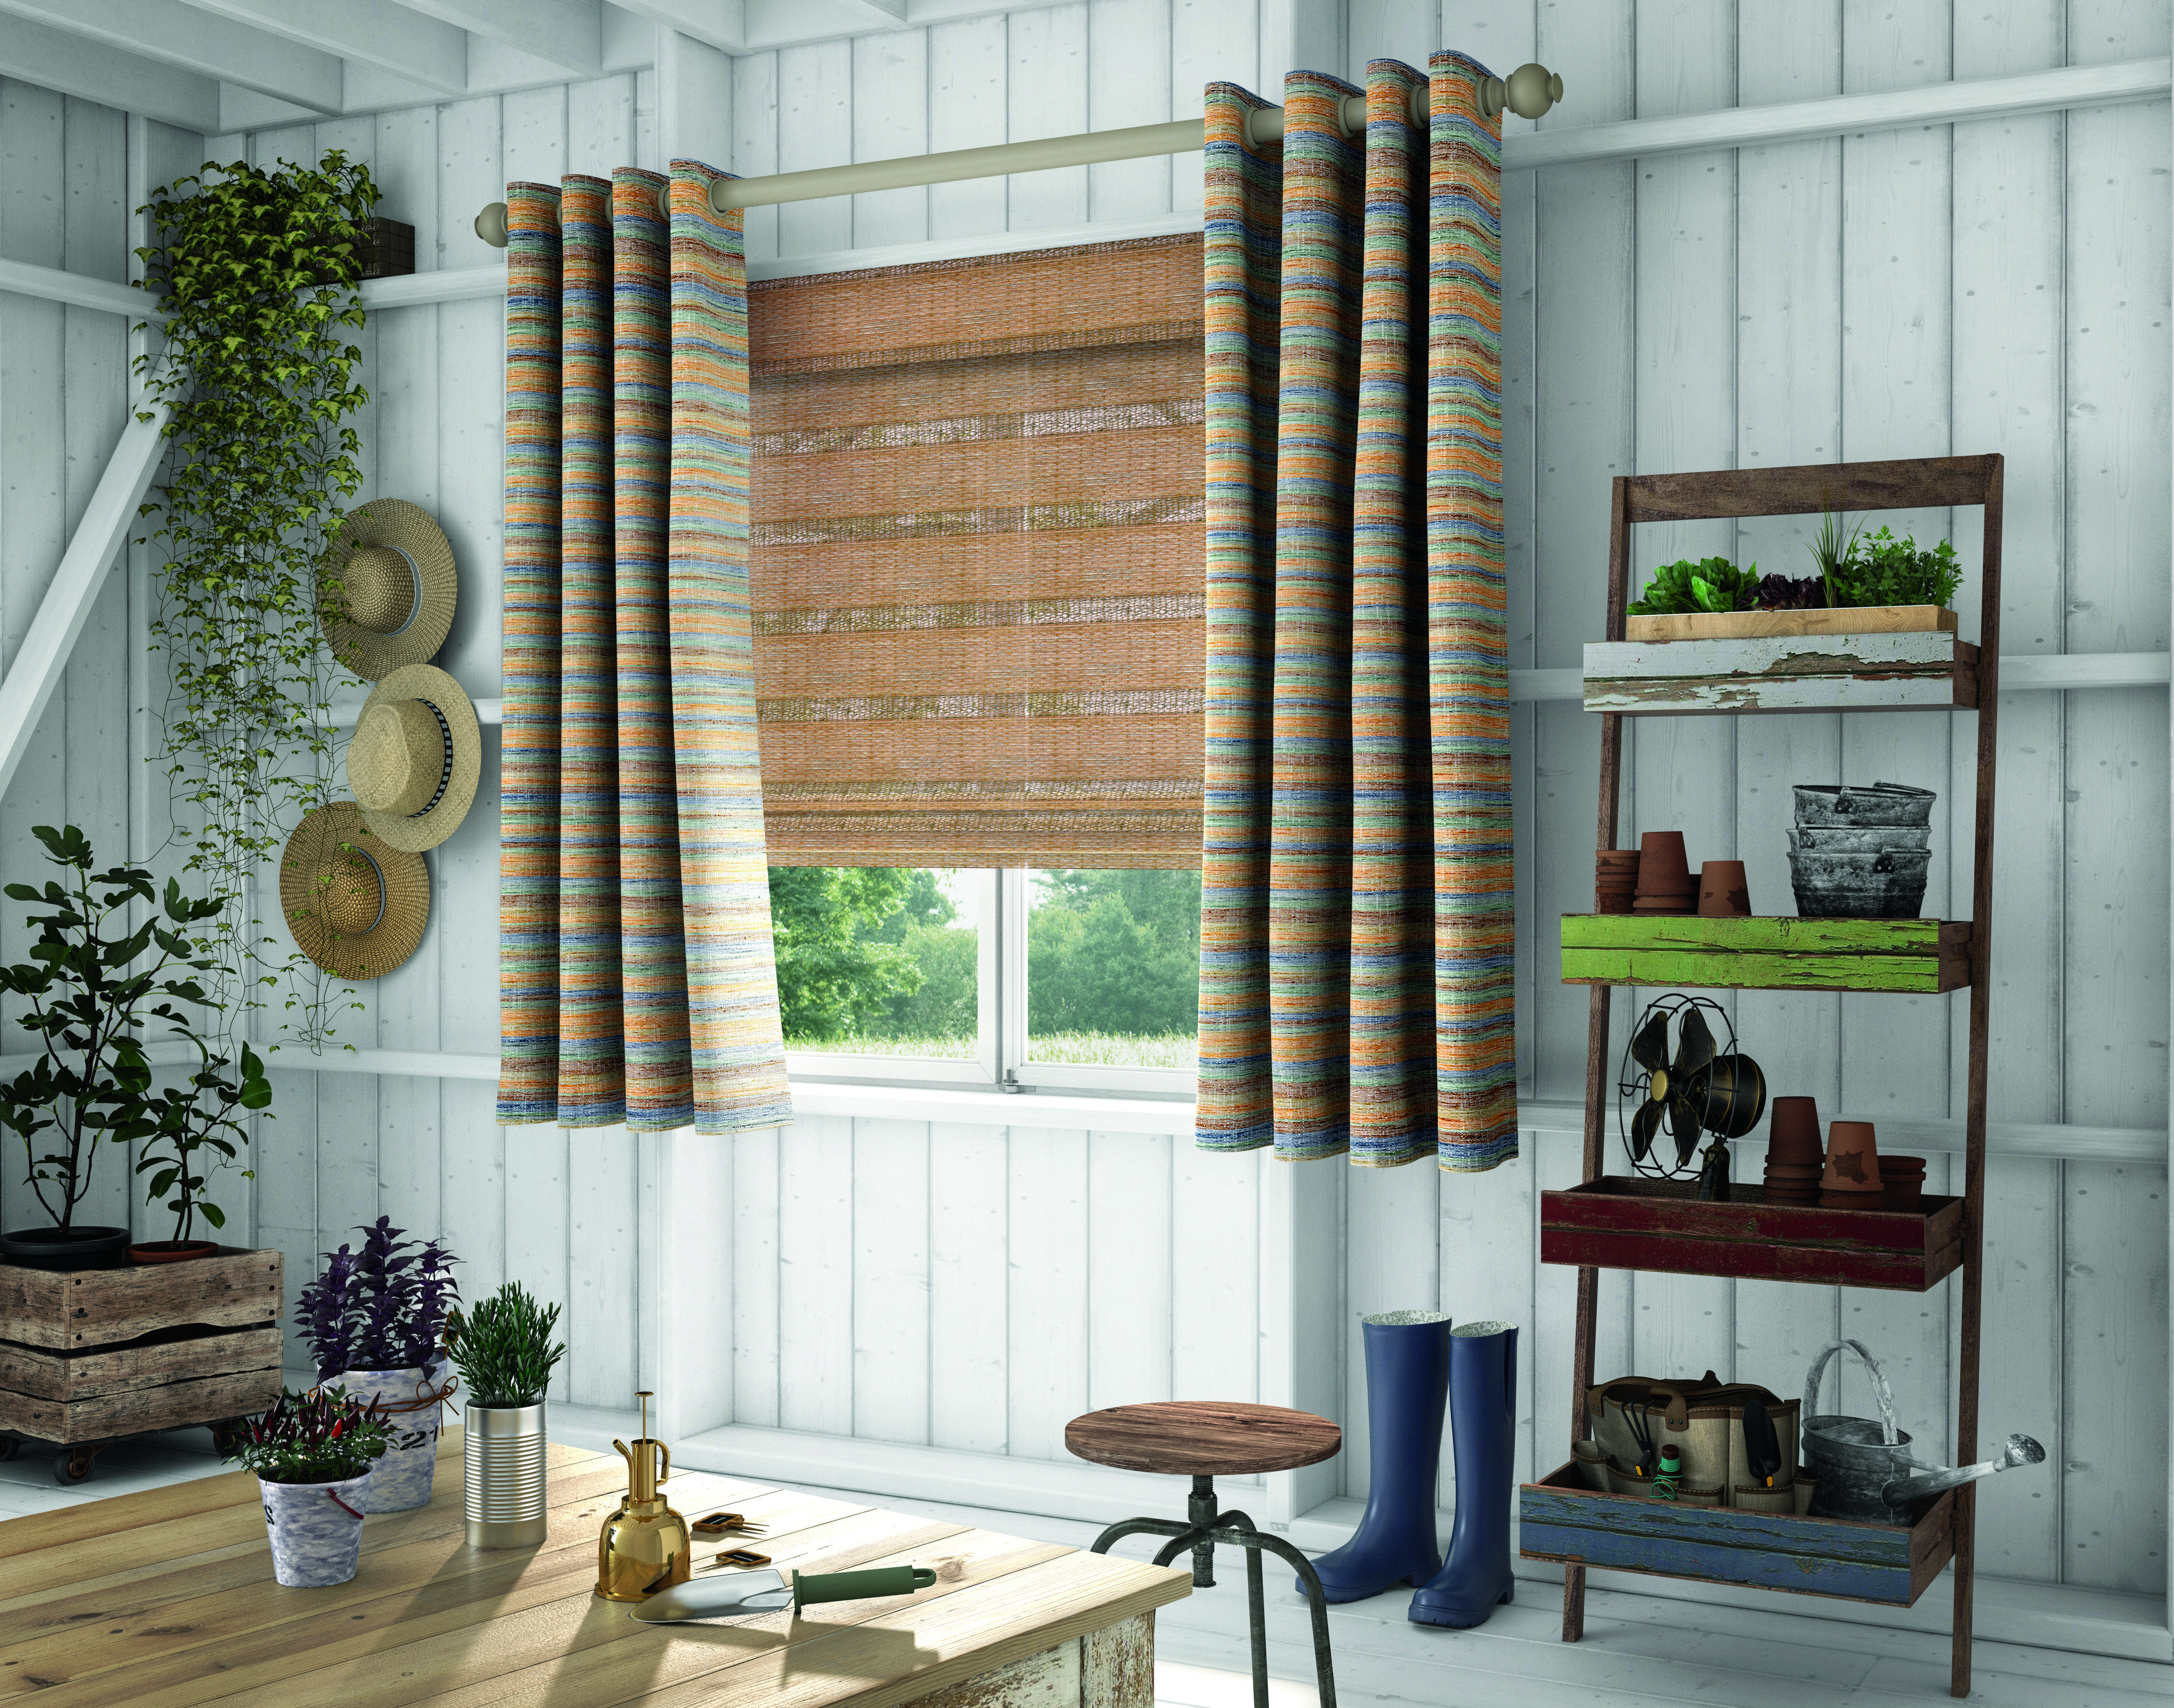 Stationary Soft Fashion Grommet Panels Pair with Woven